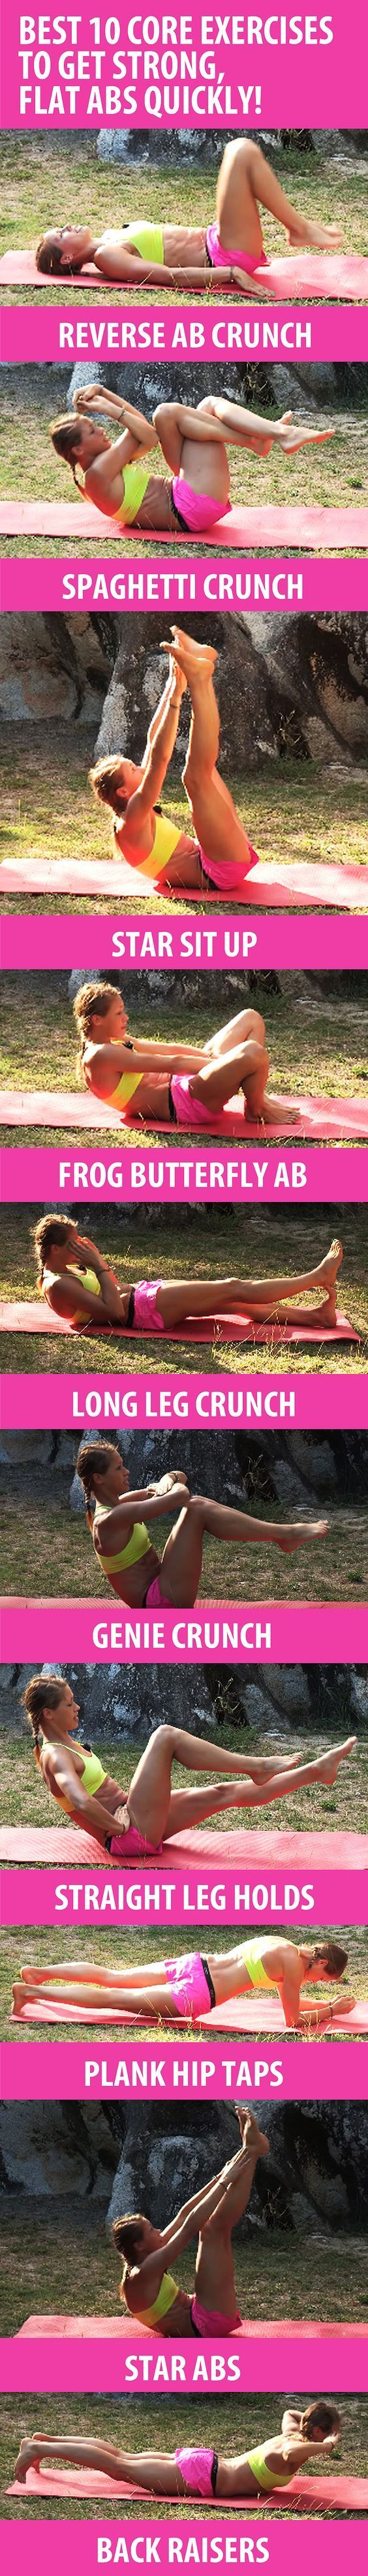 Great ab workout! #fitness #abs